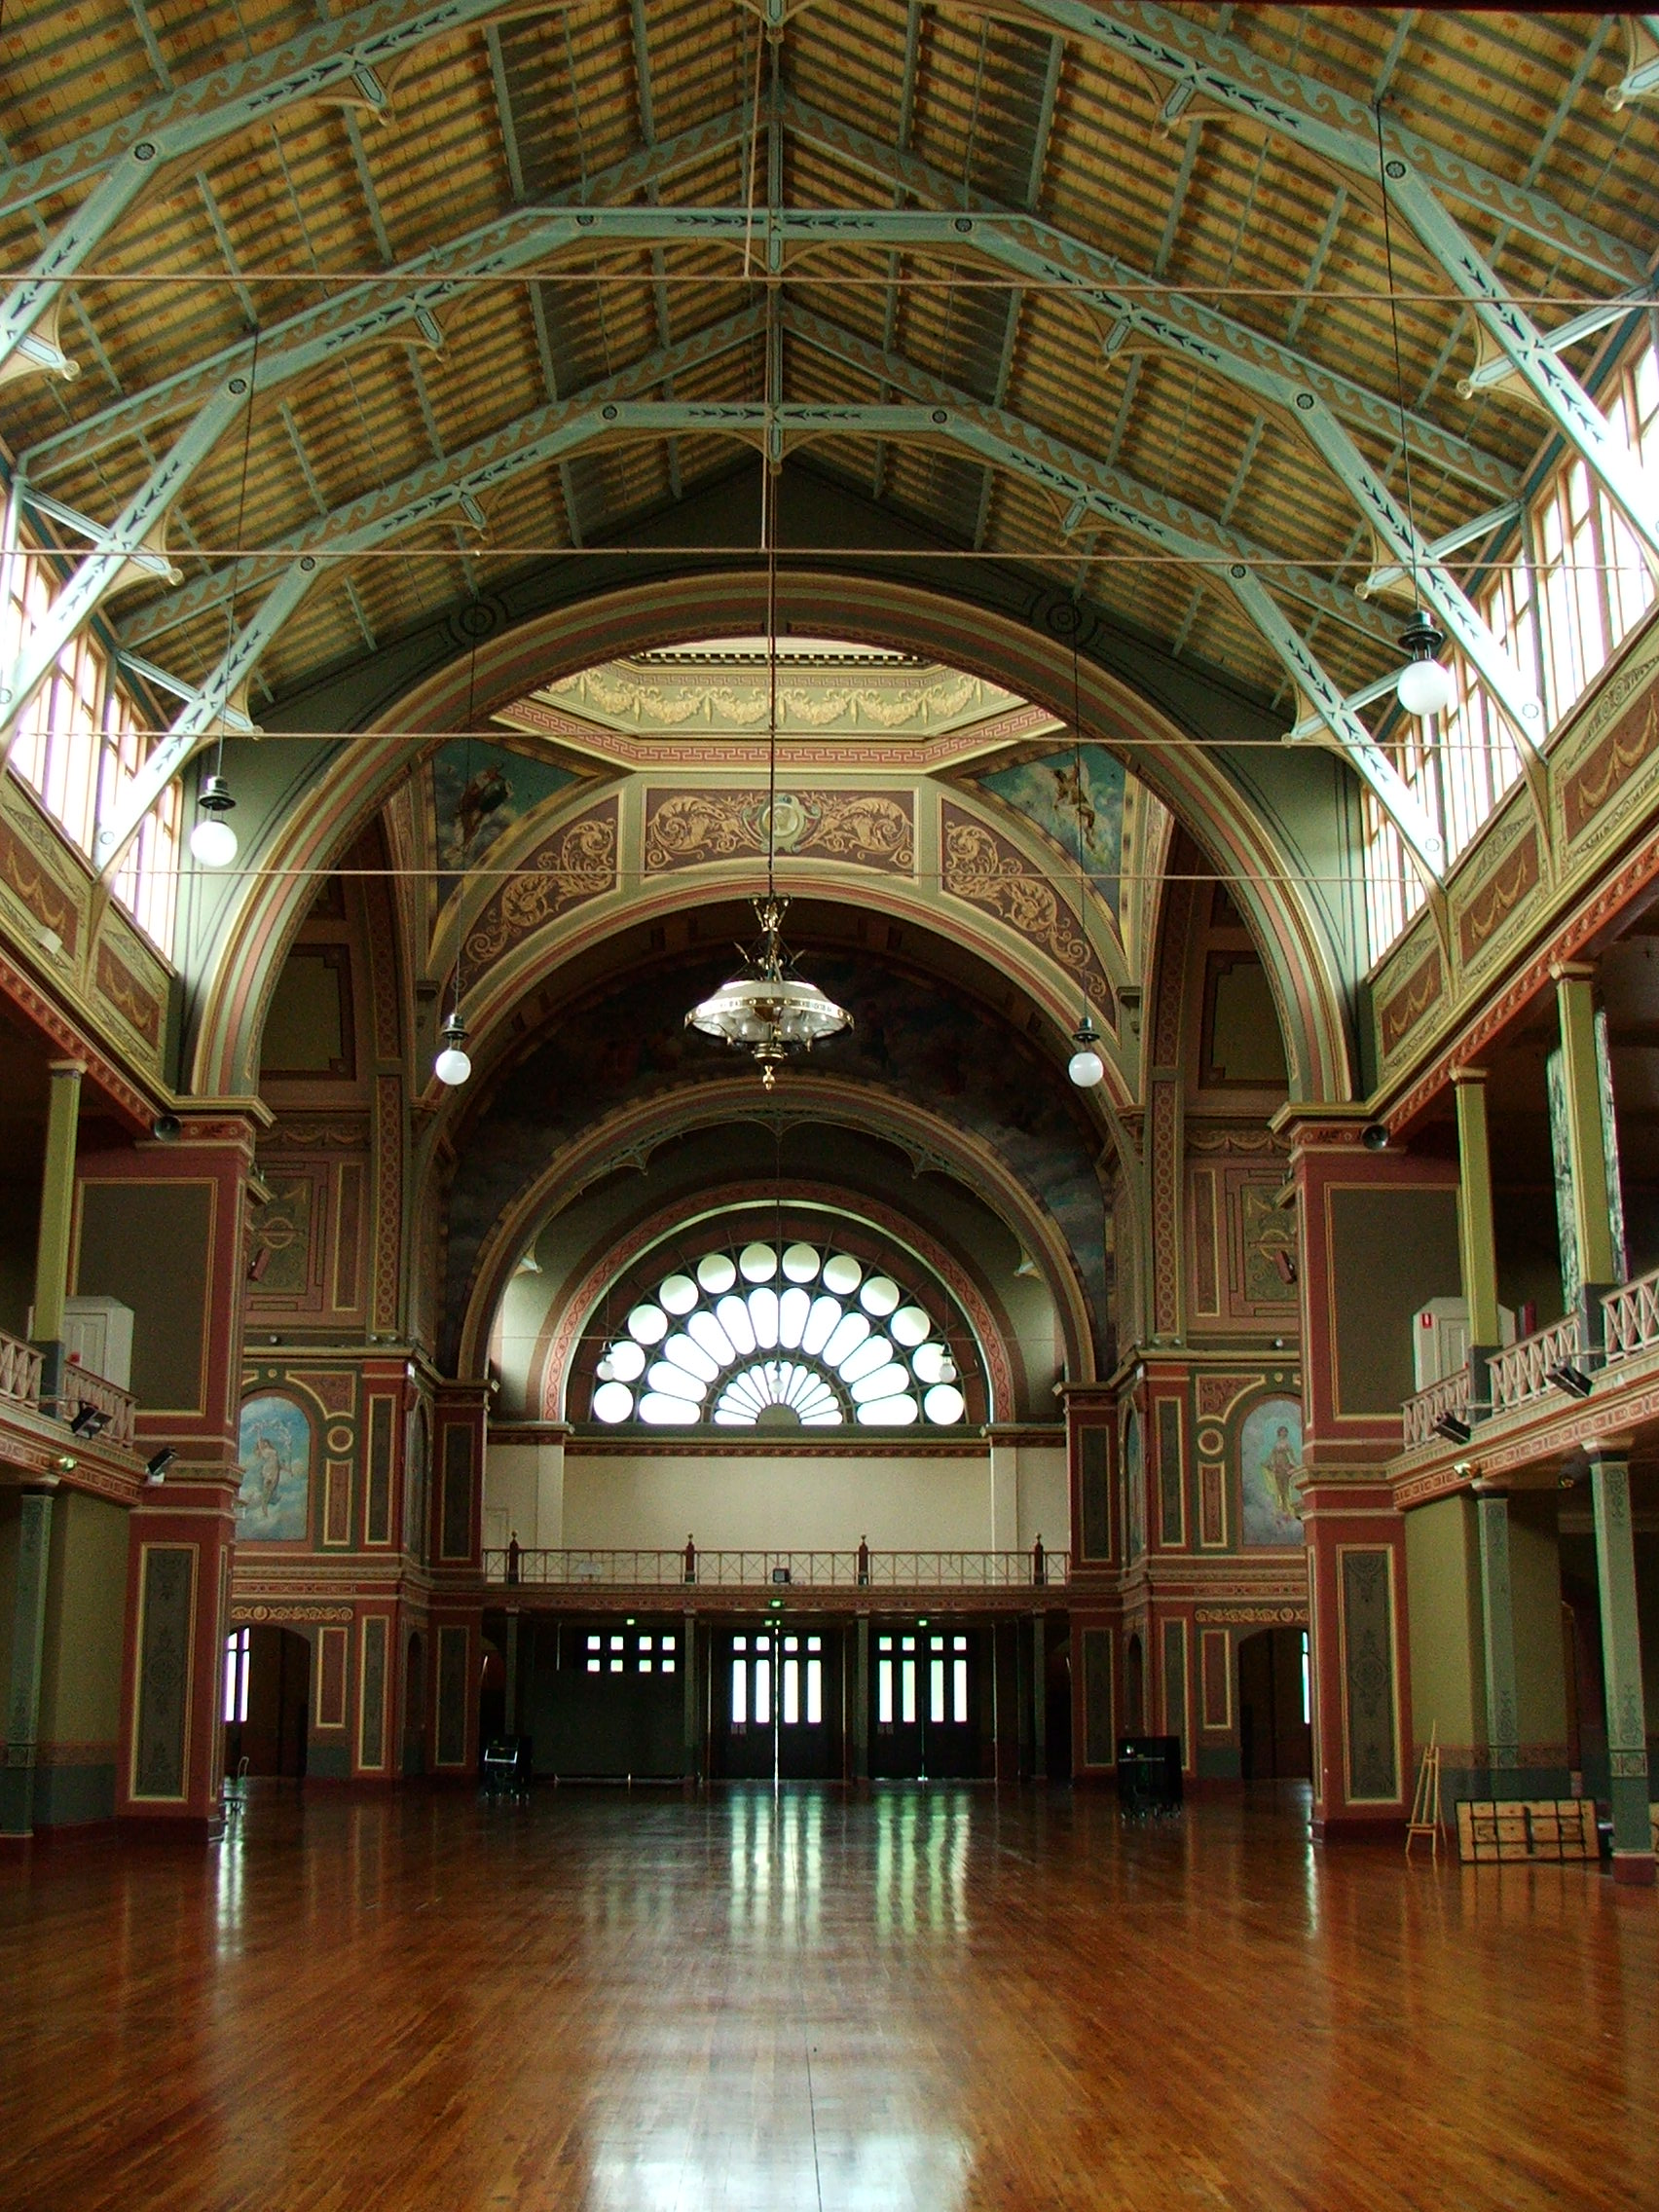 https://i0.wp.com/upload.wikimedia.org/wikipedia/commons/2/2c/Royal_Exhibition_Building_inside1.JPG